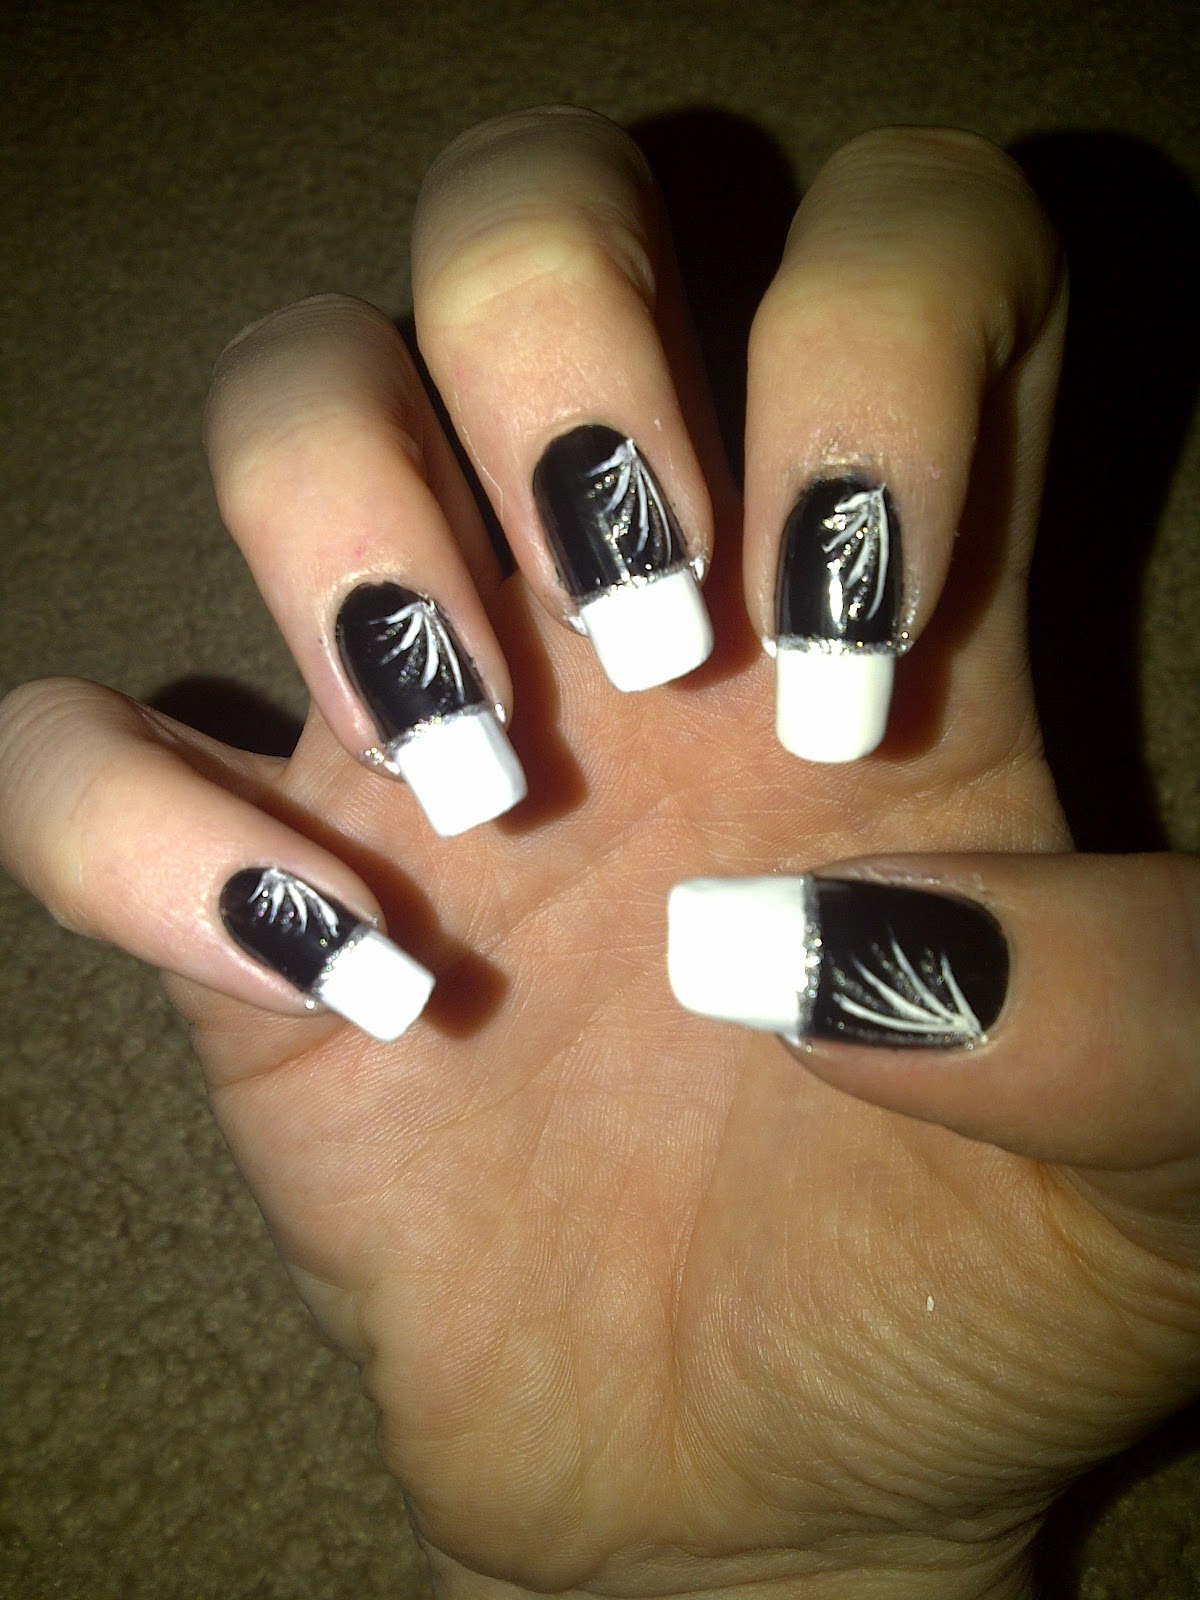 Black Nails With White Tips And Silver Design